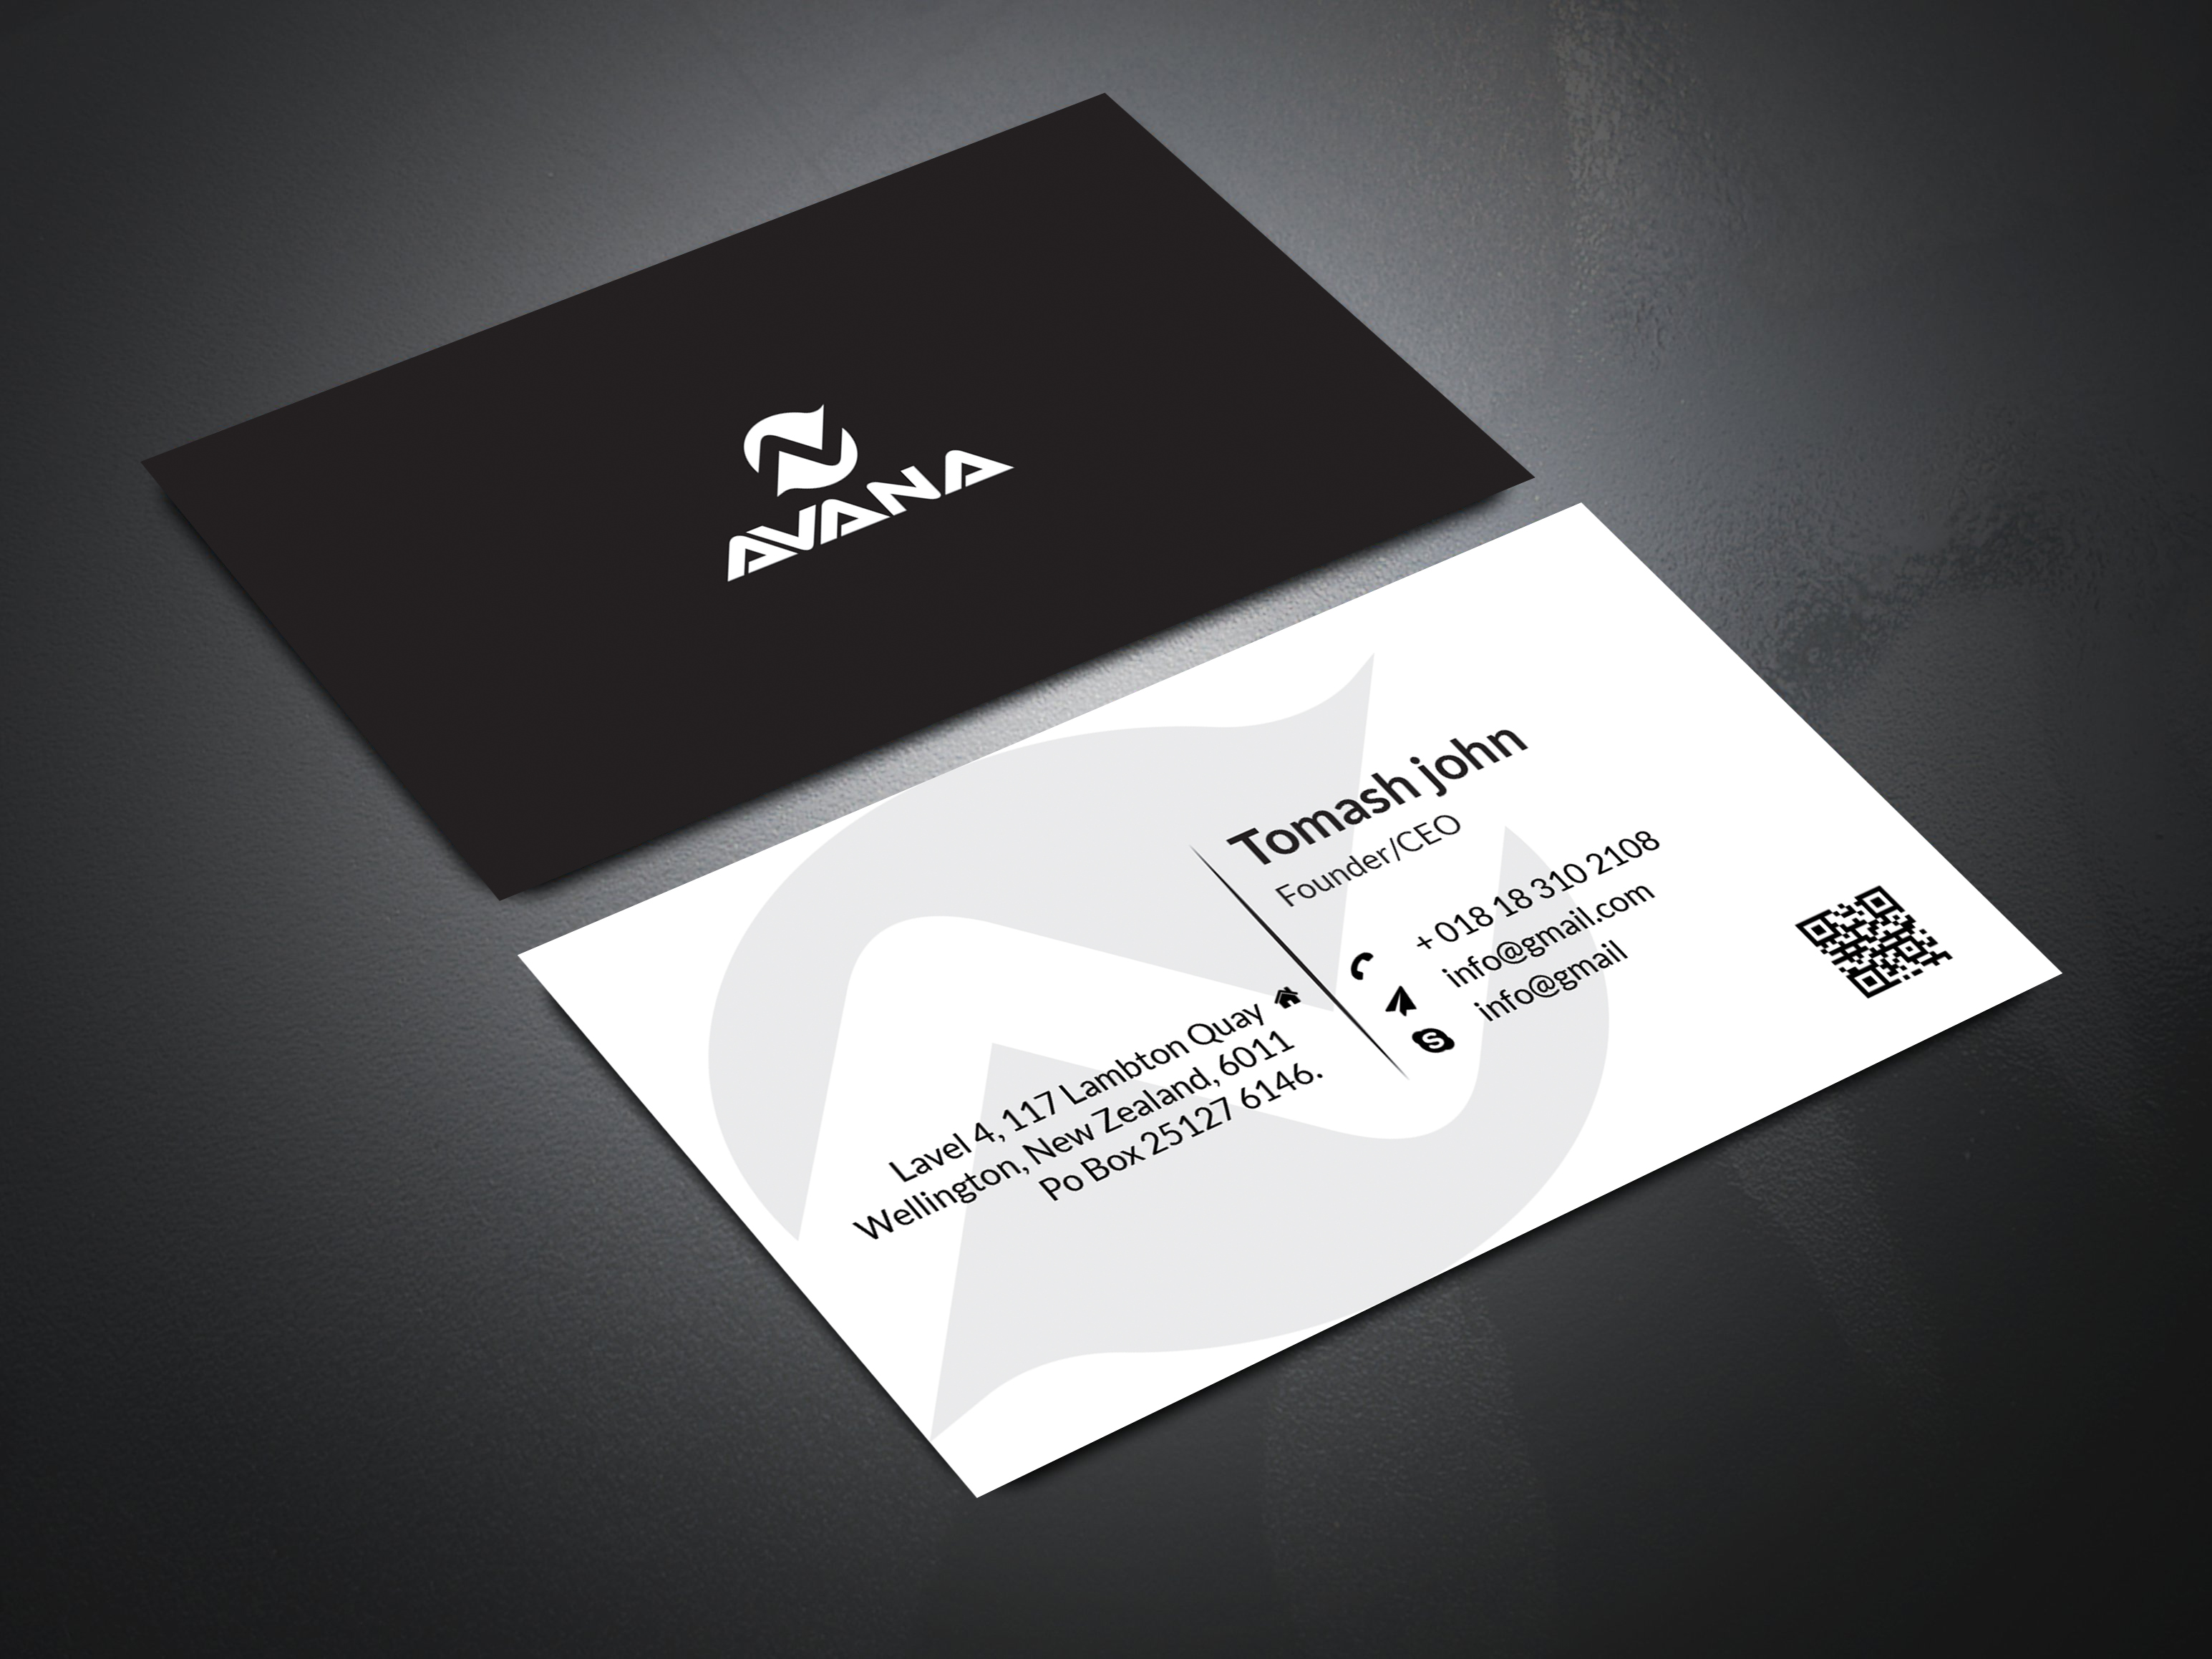 It's a smart color business card.